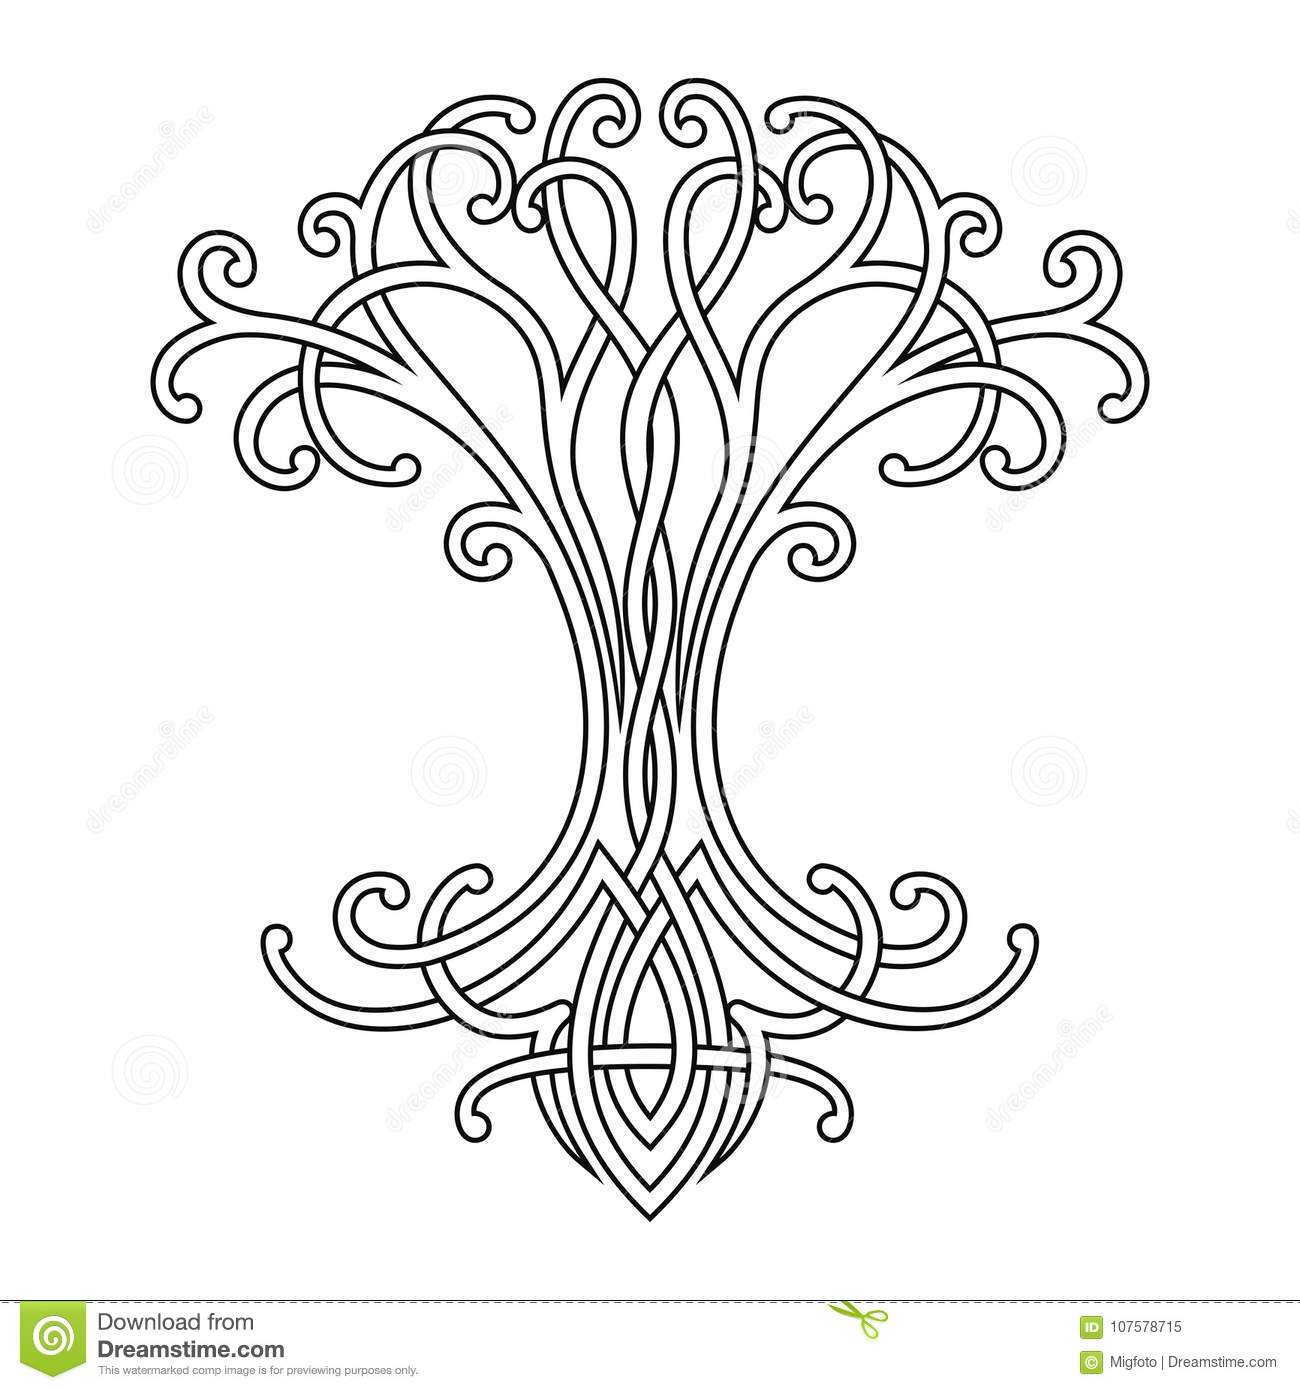 celtic drawings celtic tree of life stock vector illustration of nature celtic drawings